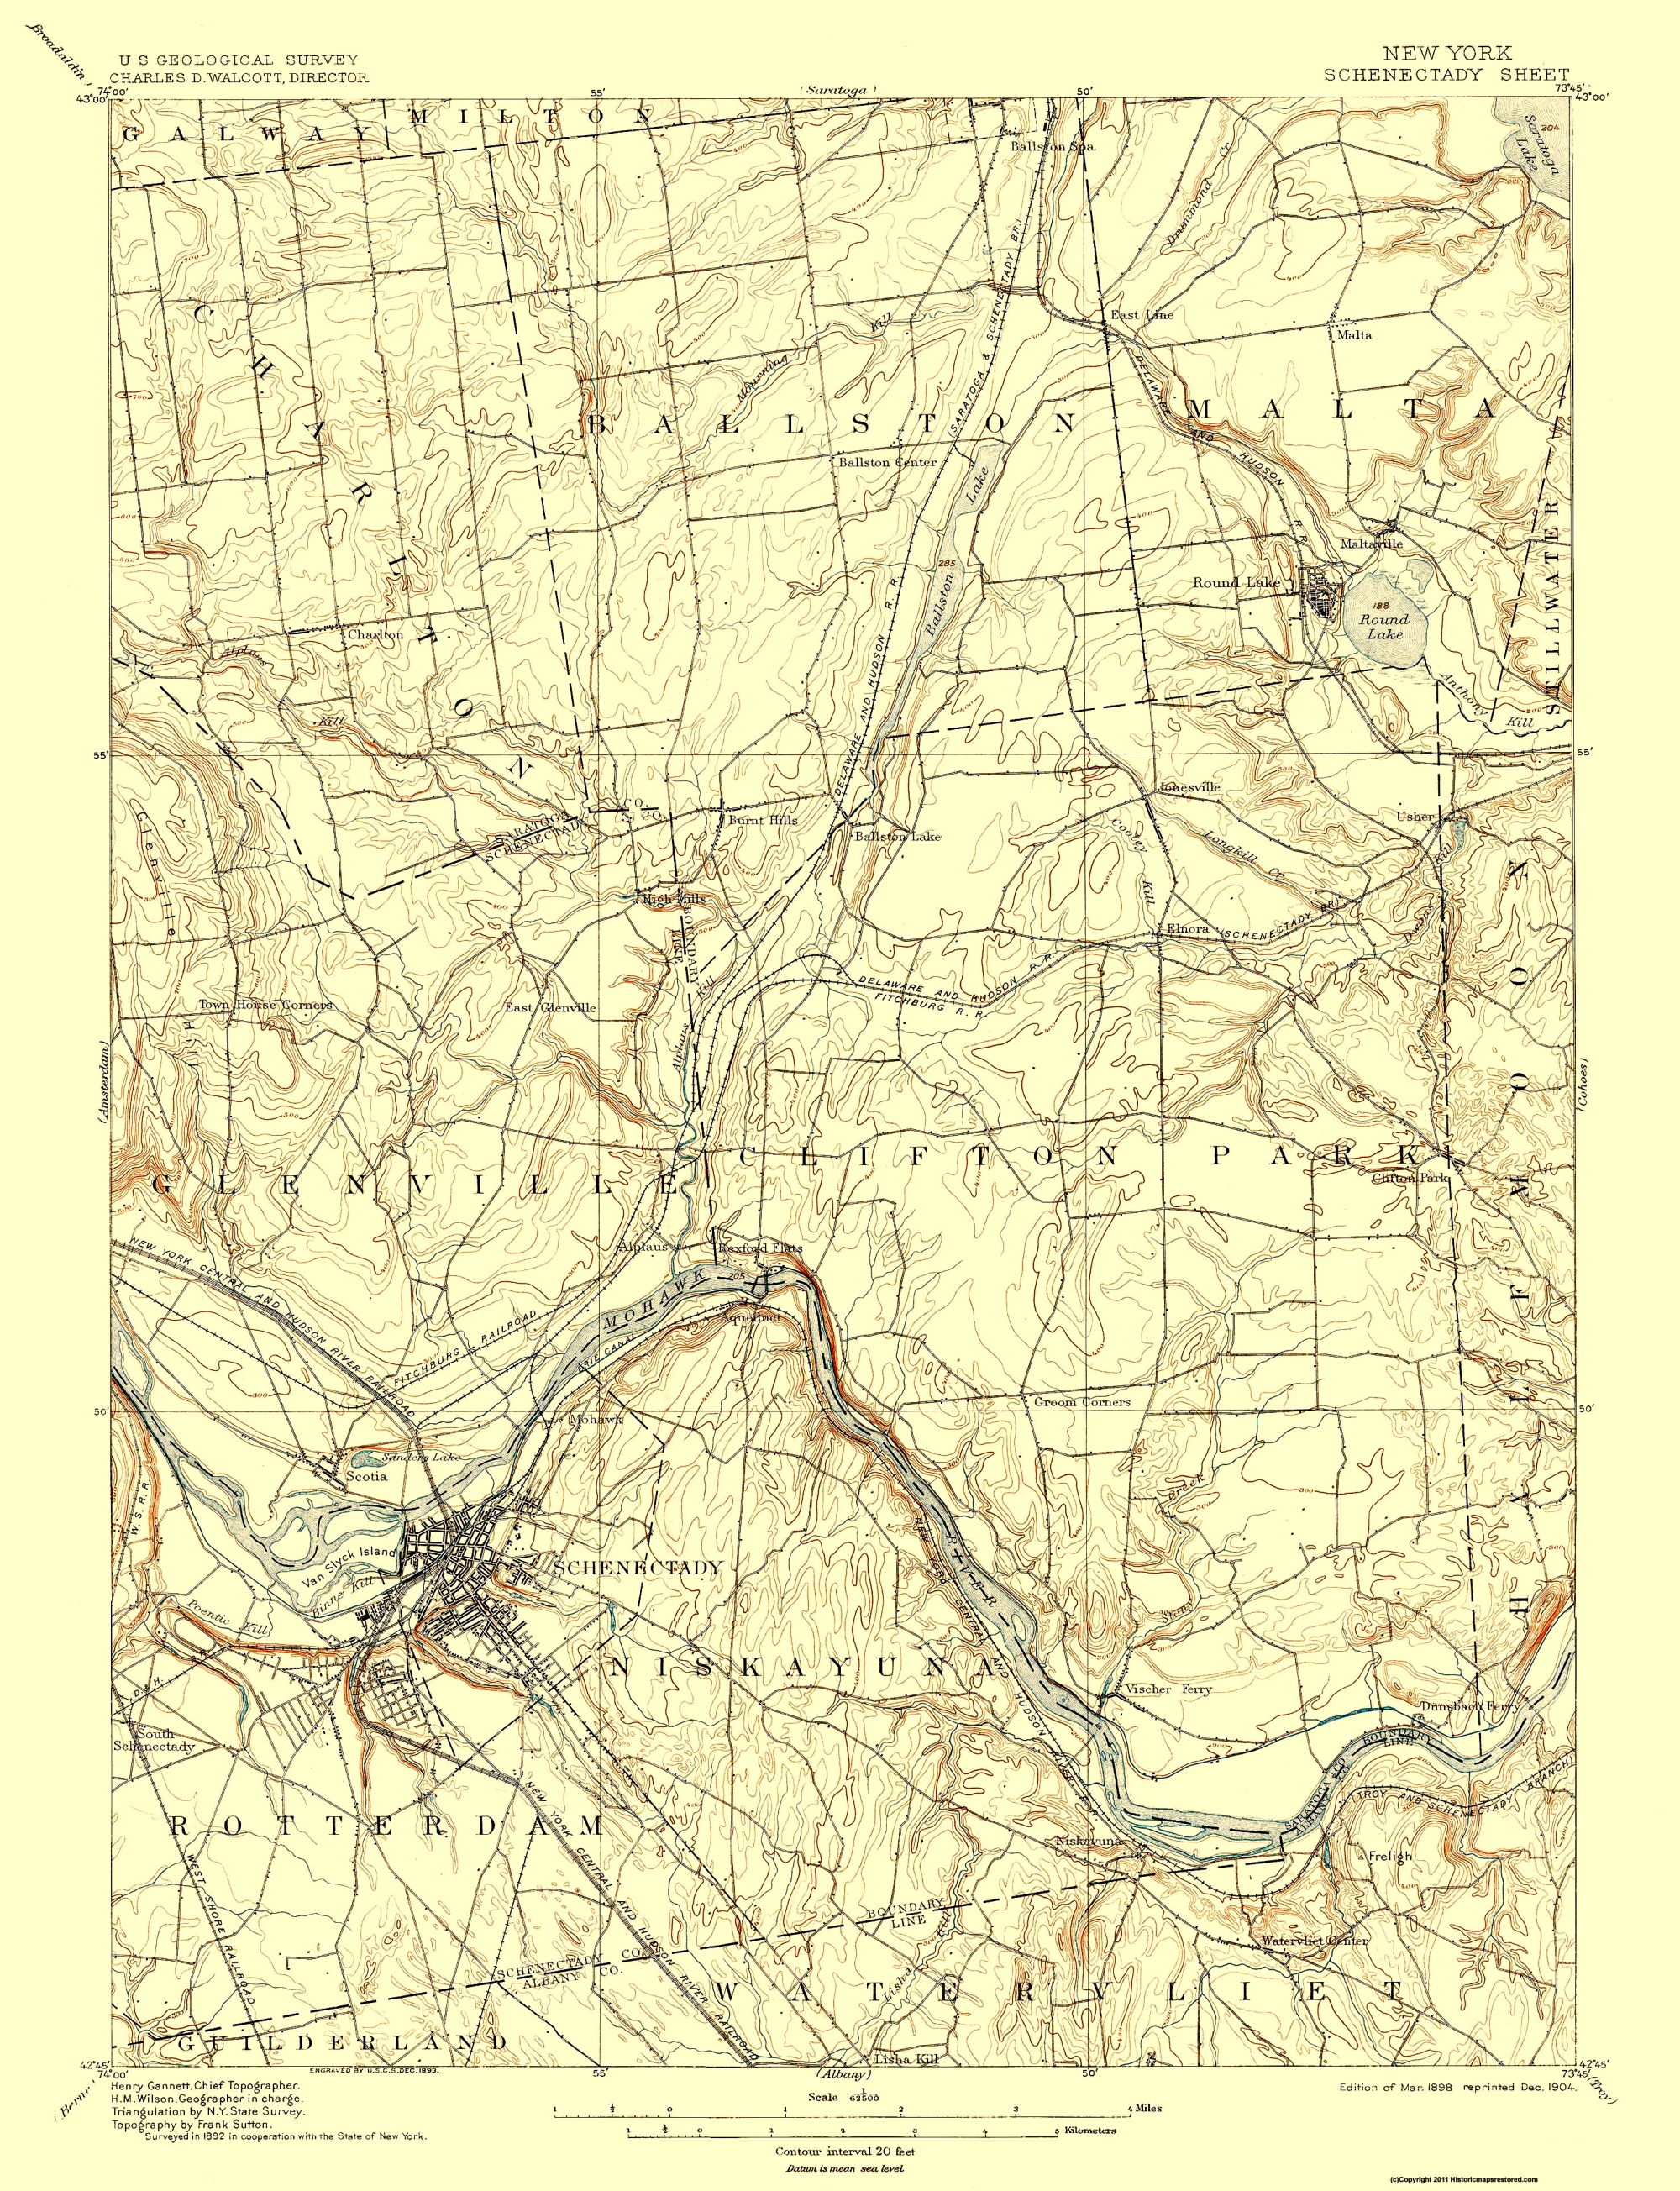 Schenectady New York Map.Old Topographical Map Schenectady New York 1898